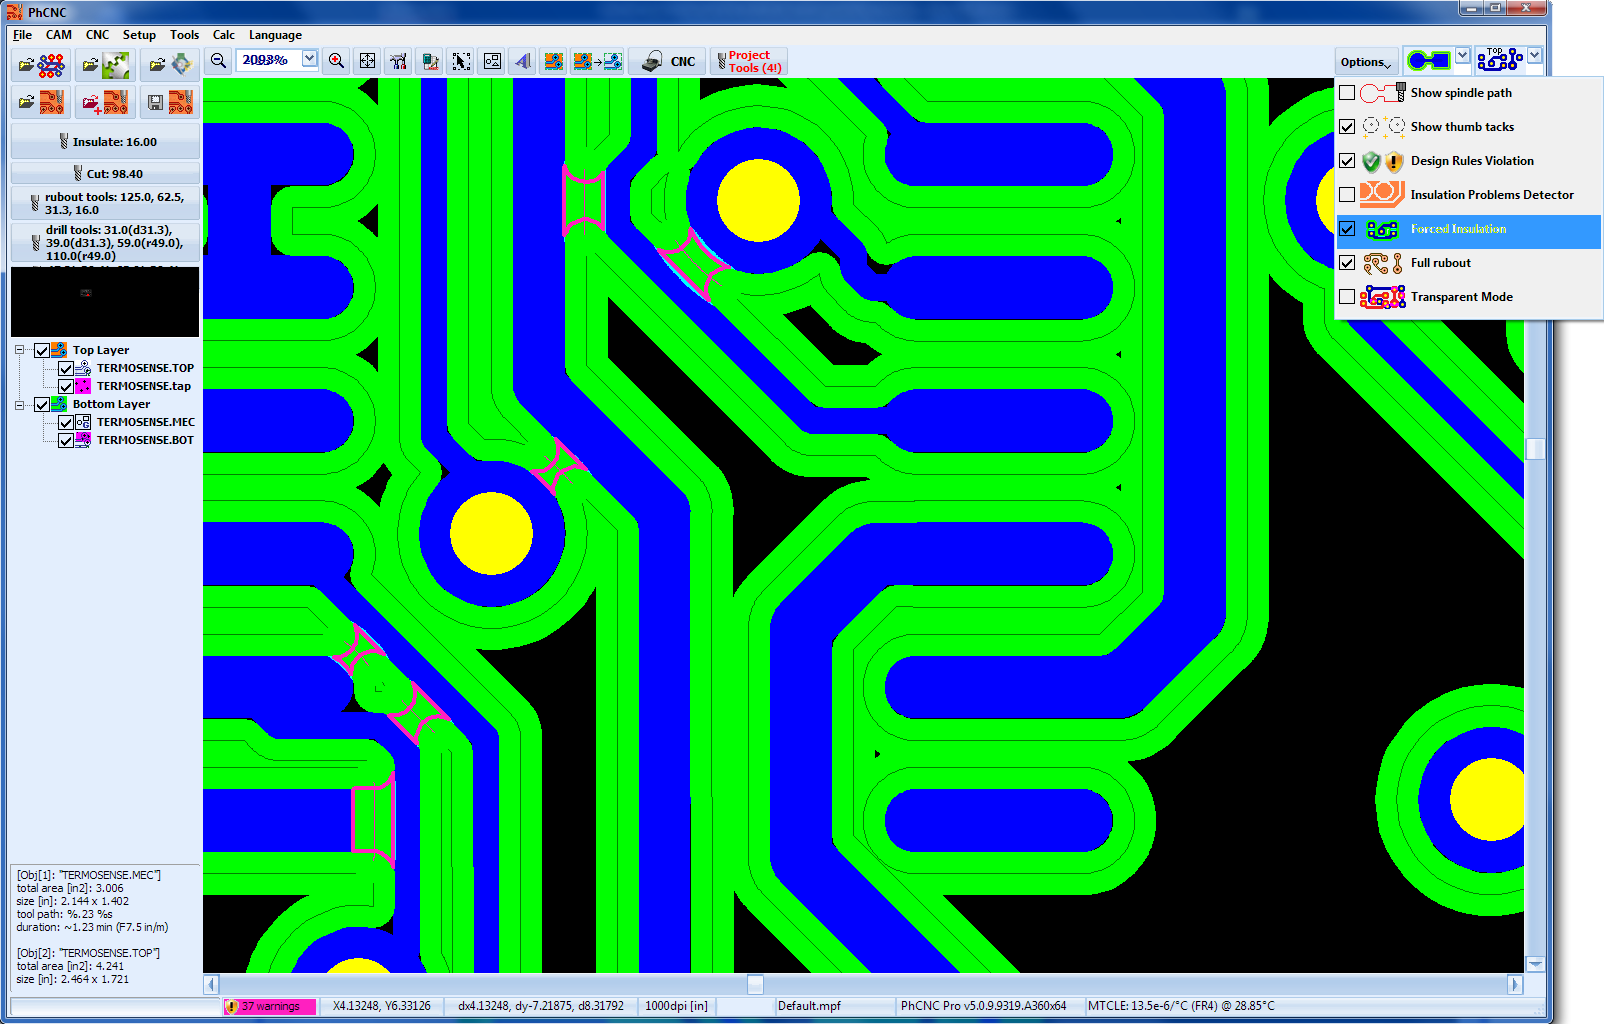 pcb prototyping software v (phcnc \u0026 phcnc pro) , telenet ltd userlight blue (default) strips shows additional copper removed from the design features when zoomed